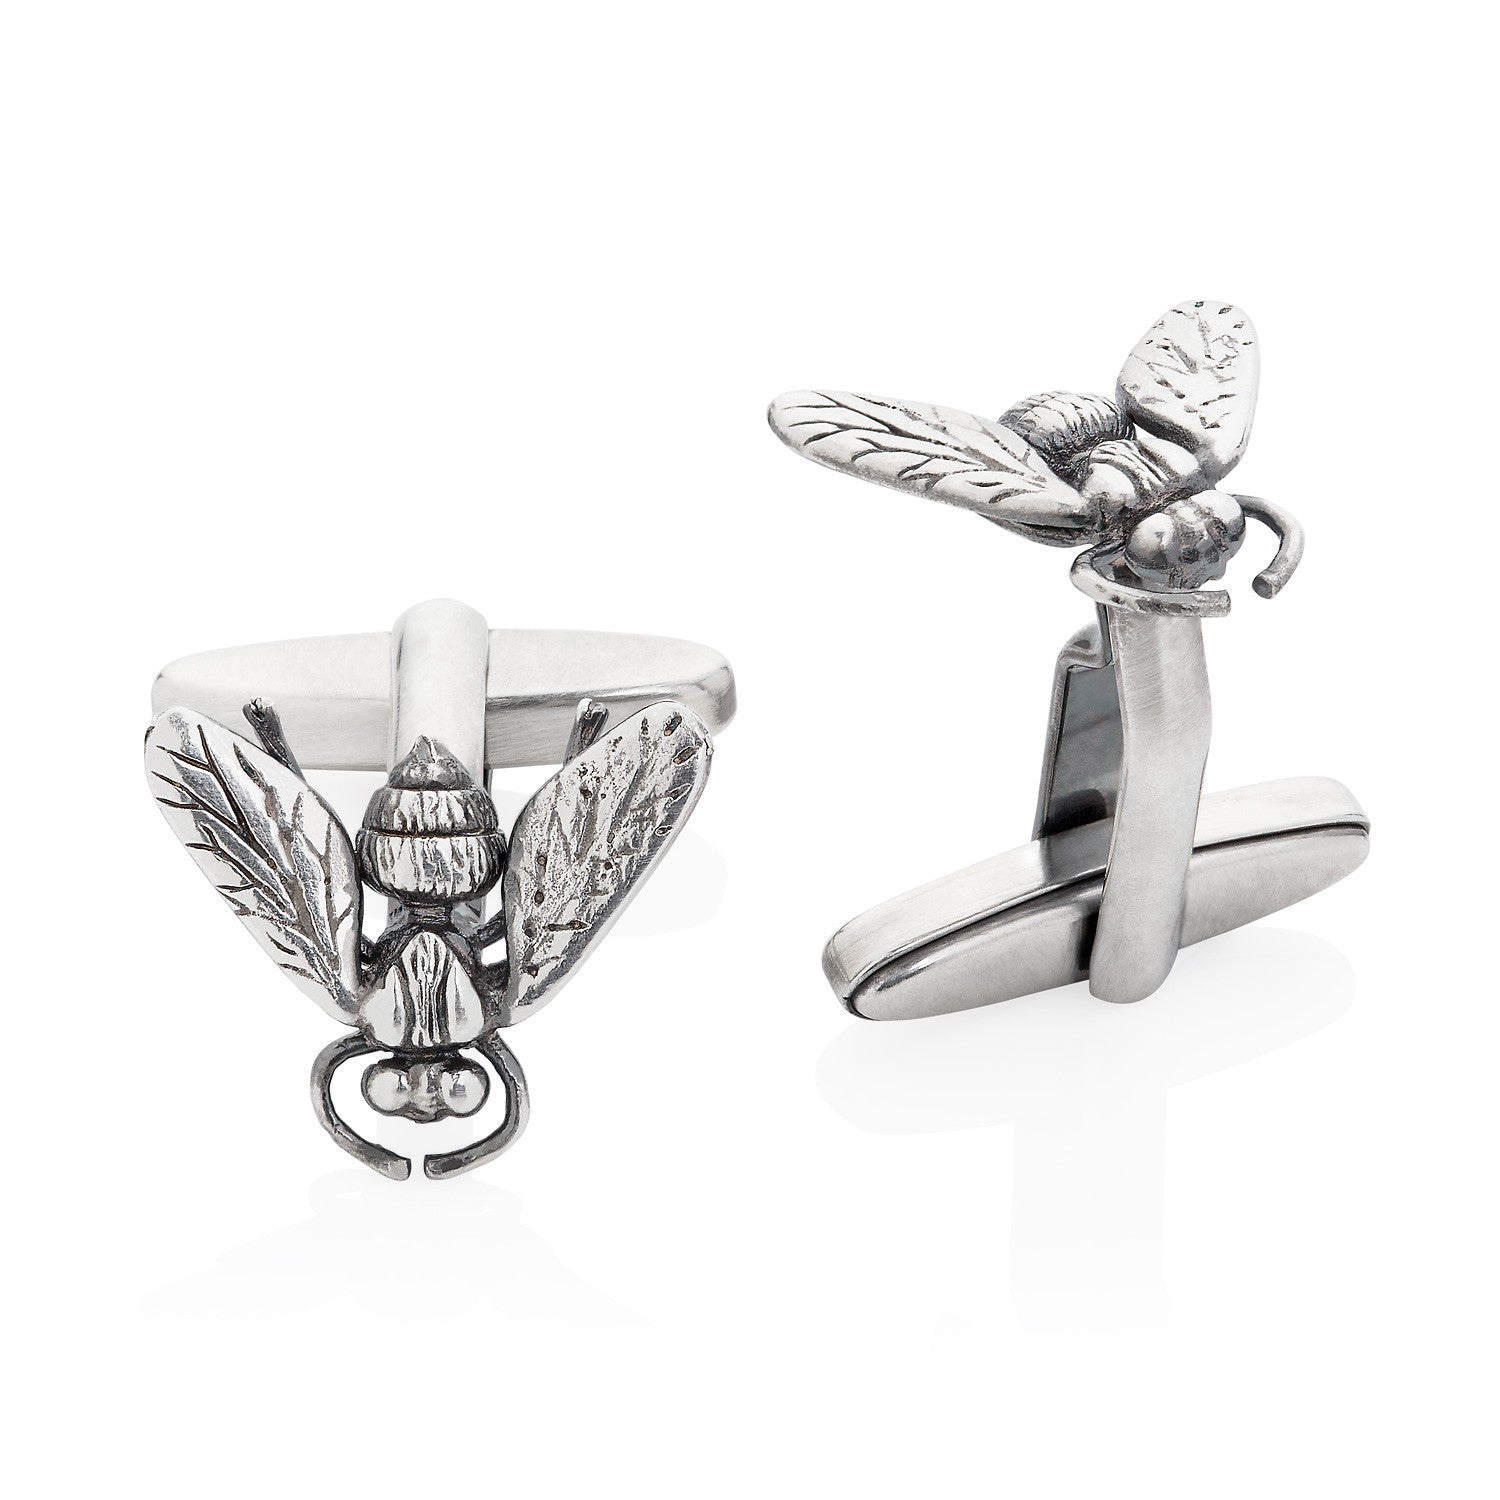 Hoverfly Cufflinks by Yasmin Everley